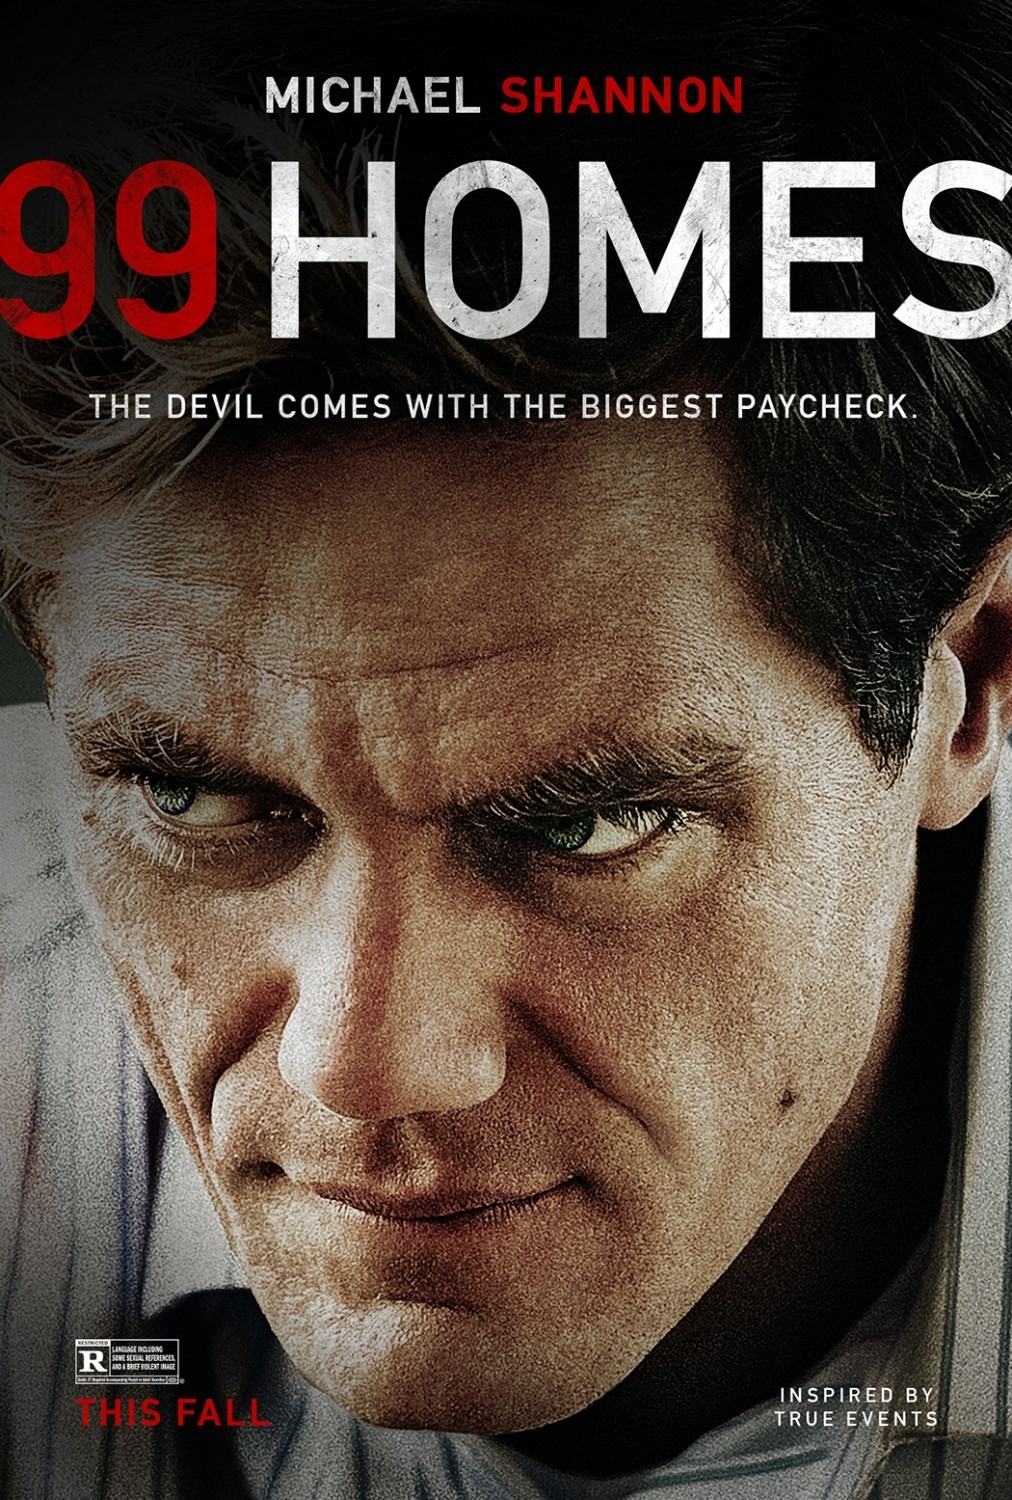 99 homes poster Performance of the Year: Michael Shannon